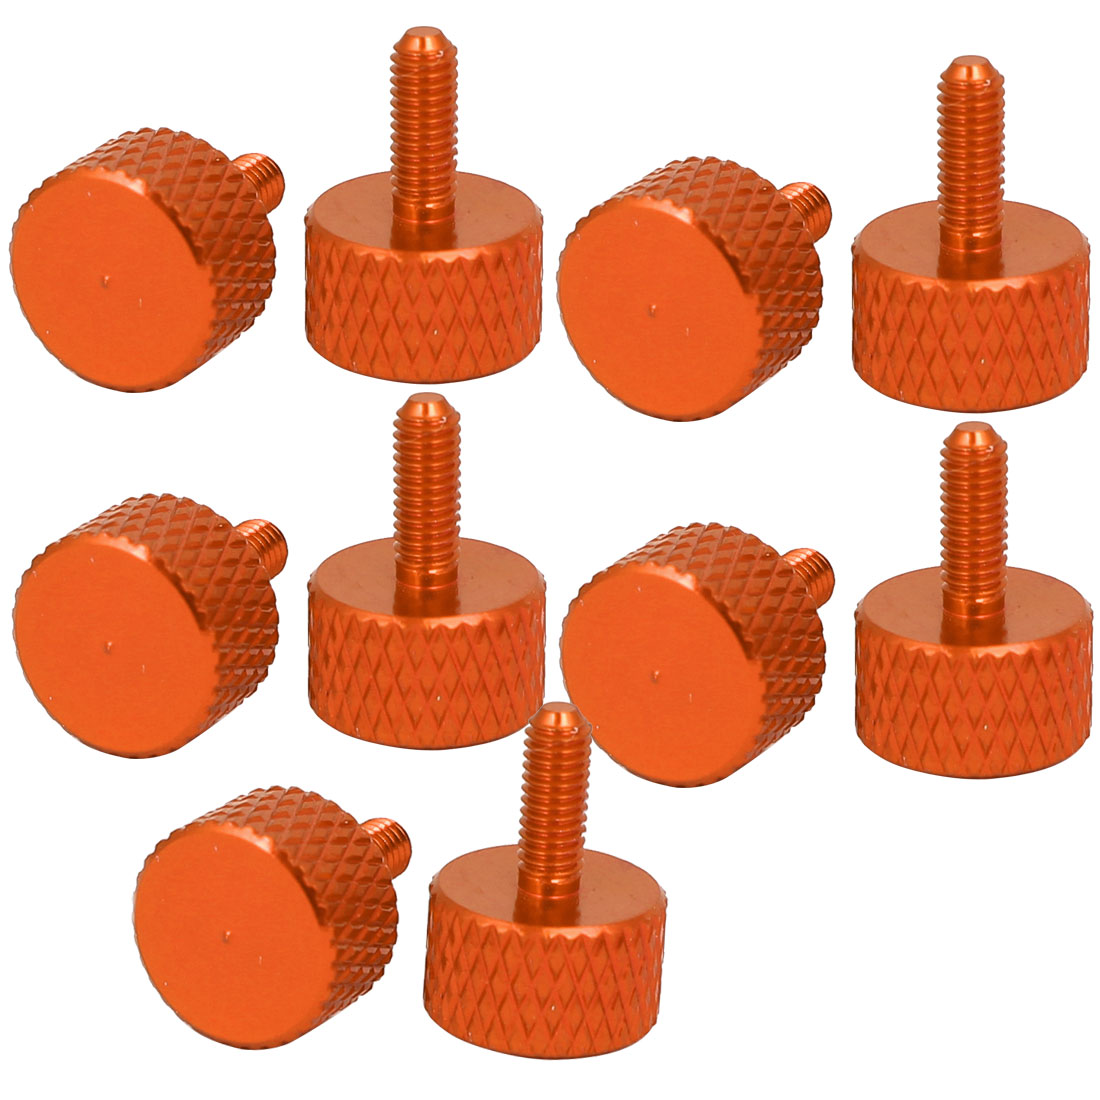 Computer PC Graphics Card Fully Threaded Knurled Thumb Screws Orange M3x8mm 10pcs